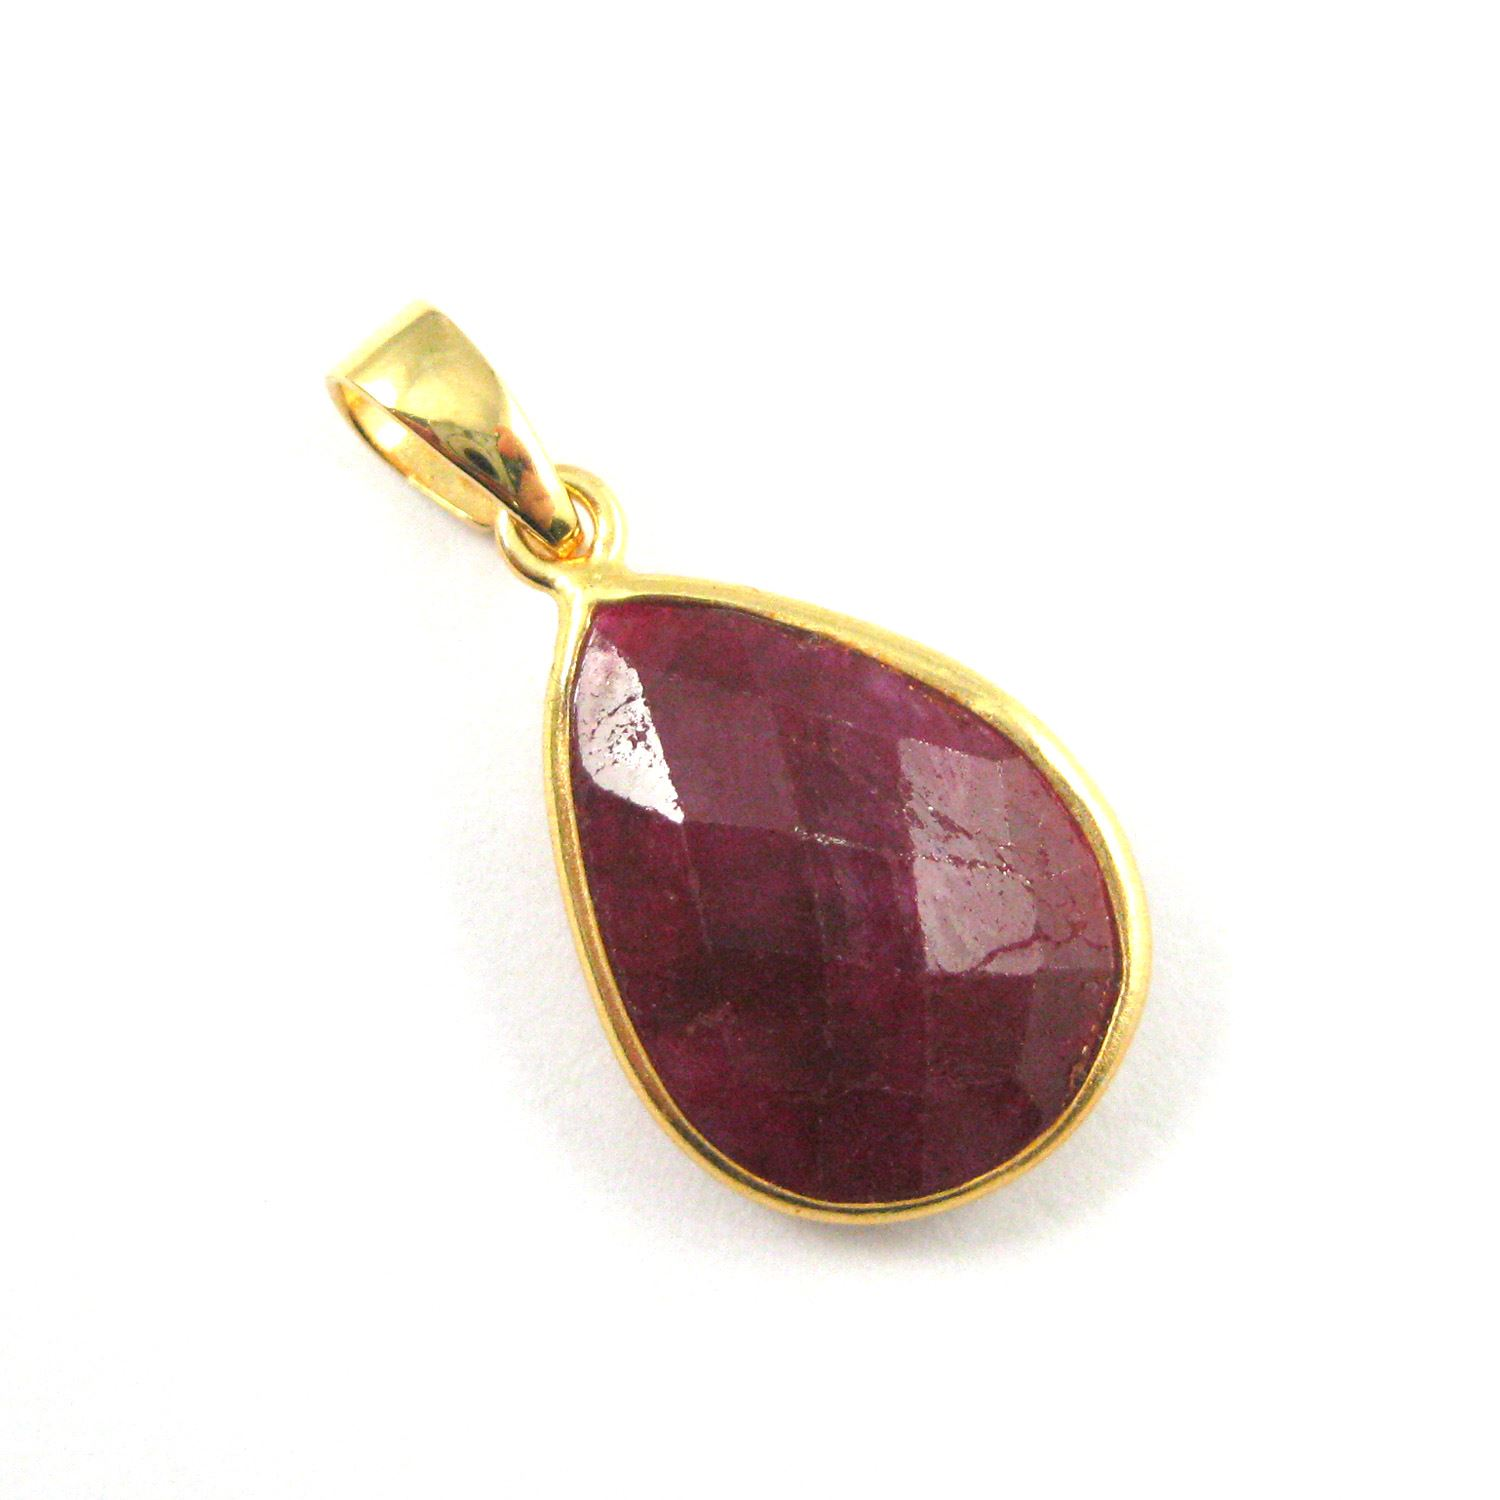 Bezel Gemstone Pendant with Bail -Gold plated Sterling Silver Teardrop Gem Pendant - Ready for Necklace - 29mm - Ruby Dyed